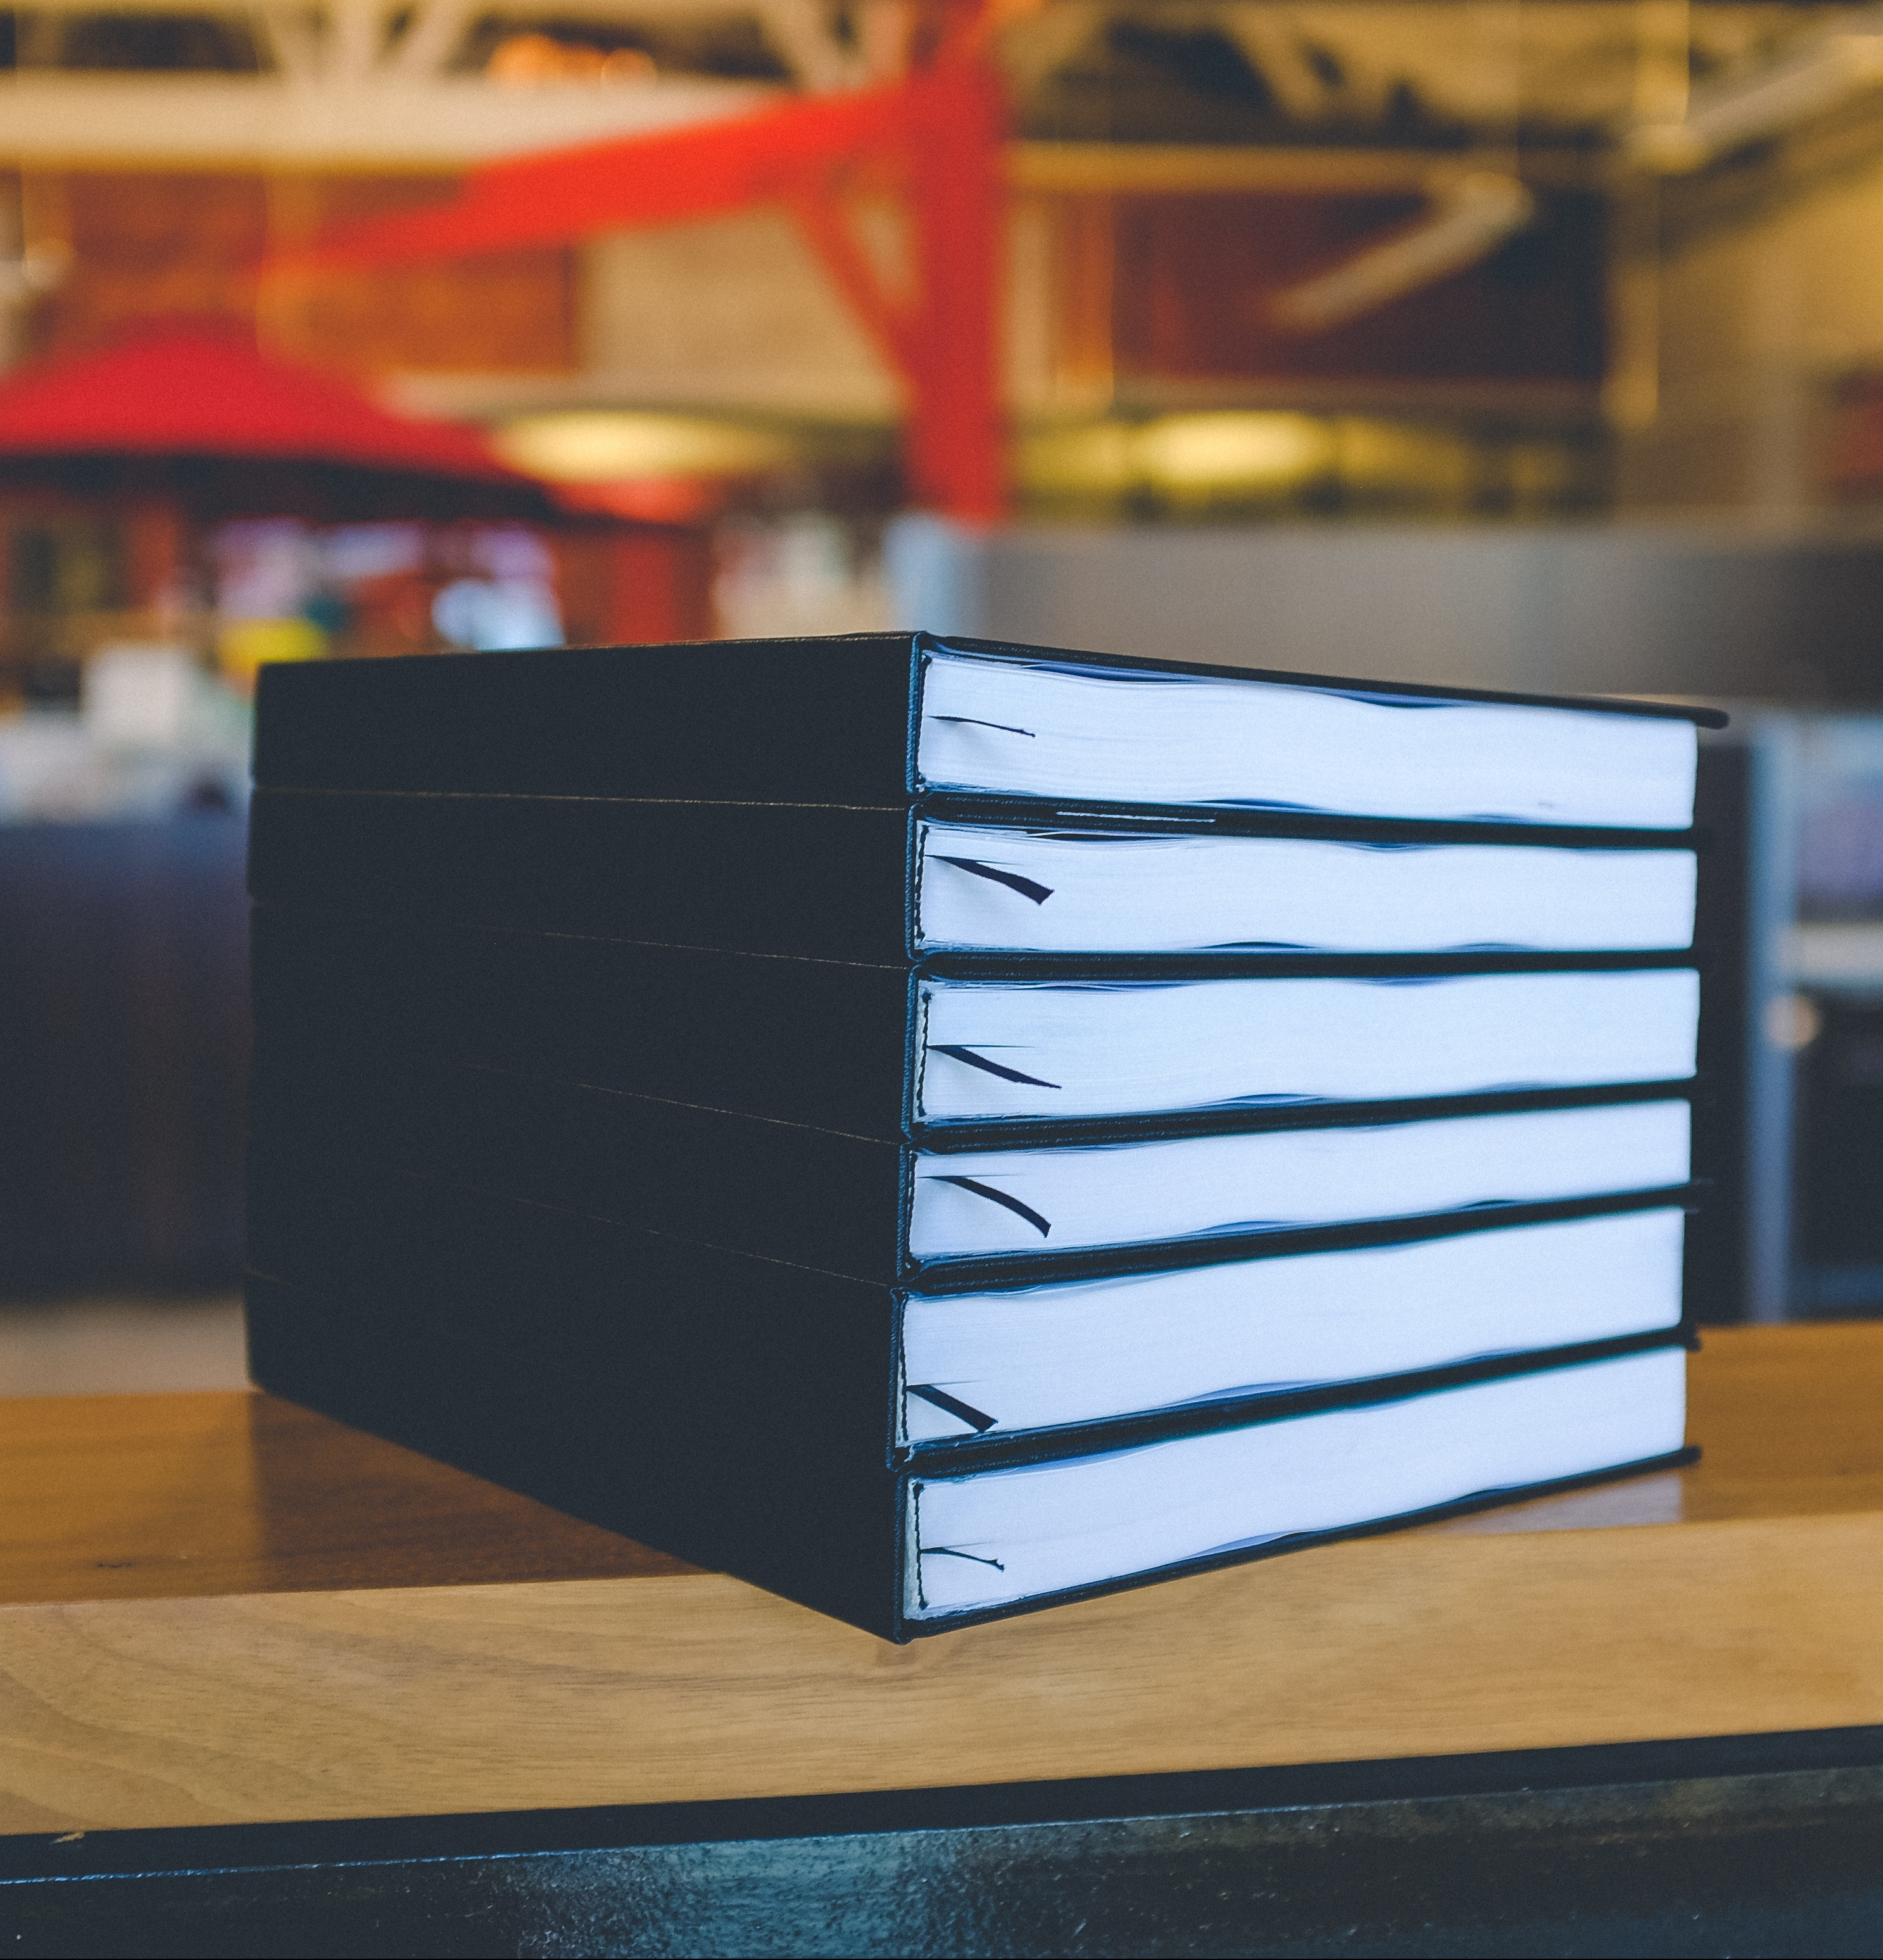 Get your big book reviewed by Independent Book Review